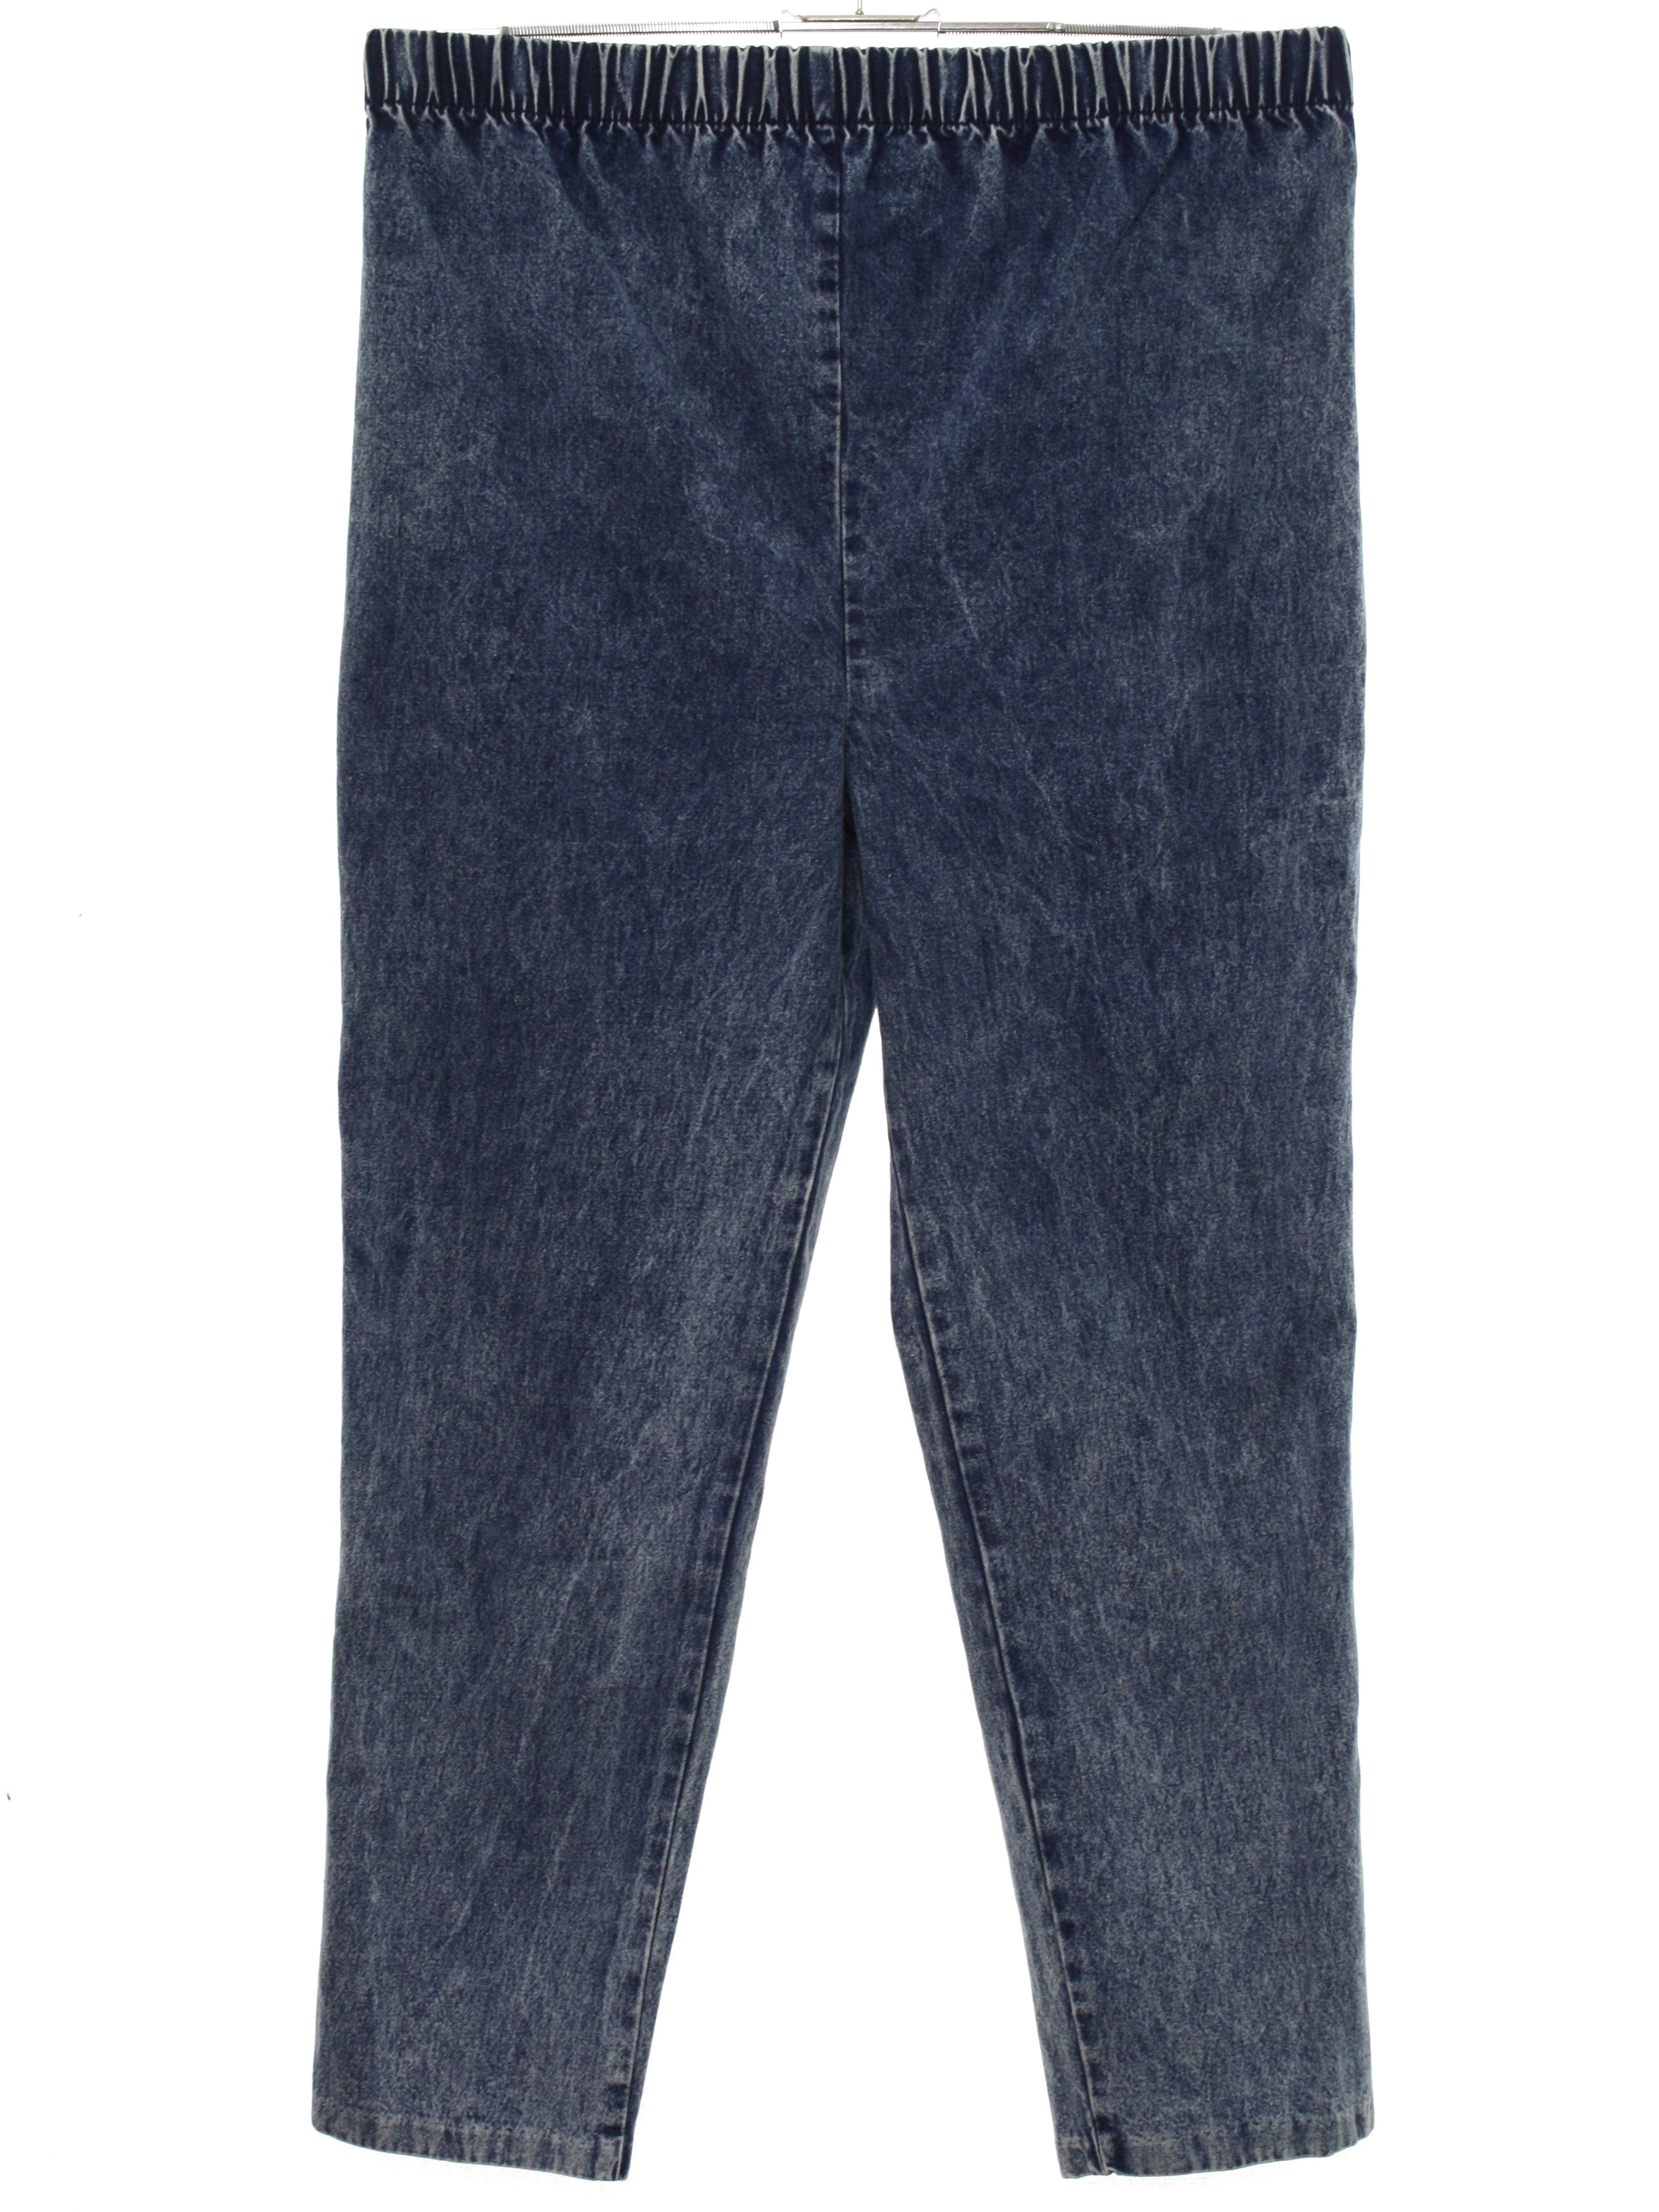 08dcaef90e31e 1980's Maternity Womens Totally 80s Maternity Acid Washed Jeans Pants  $28.00 In stock. Item No. 332162